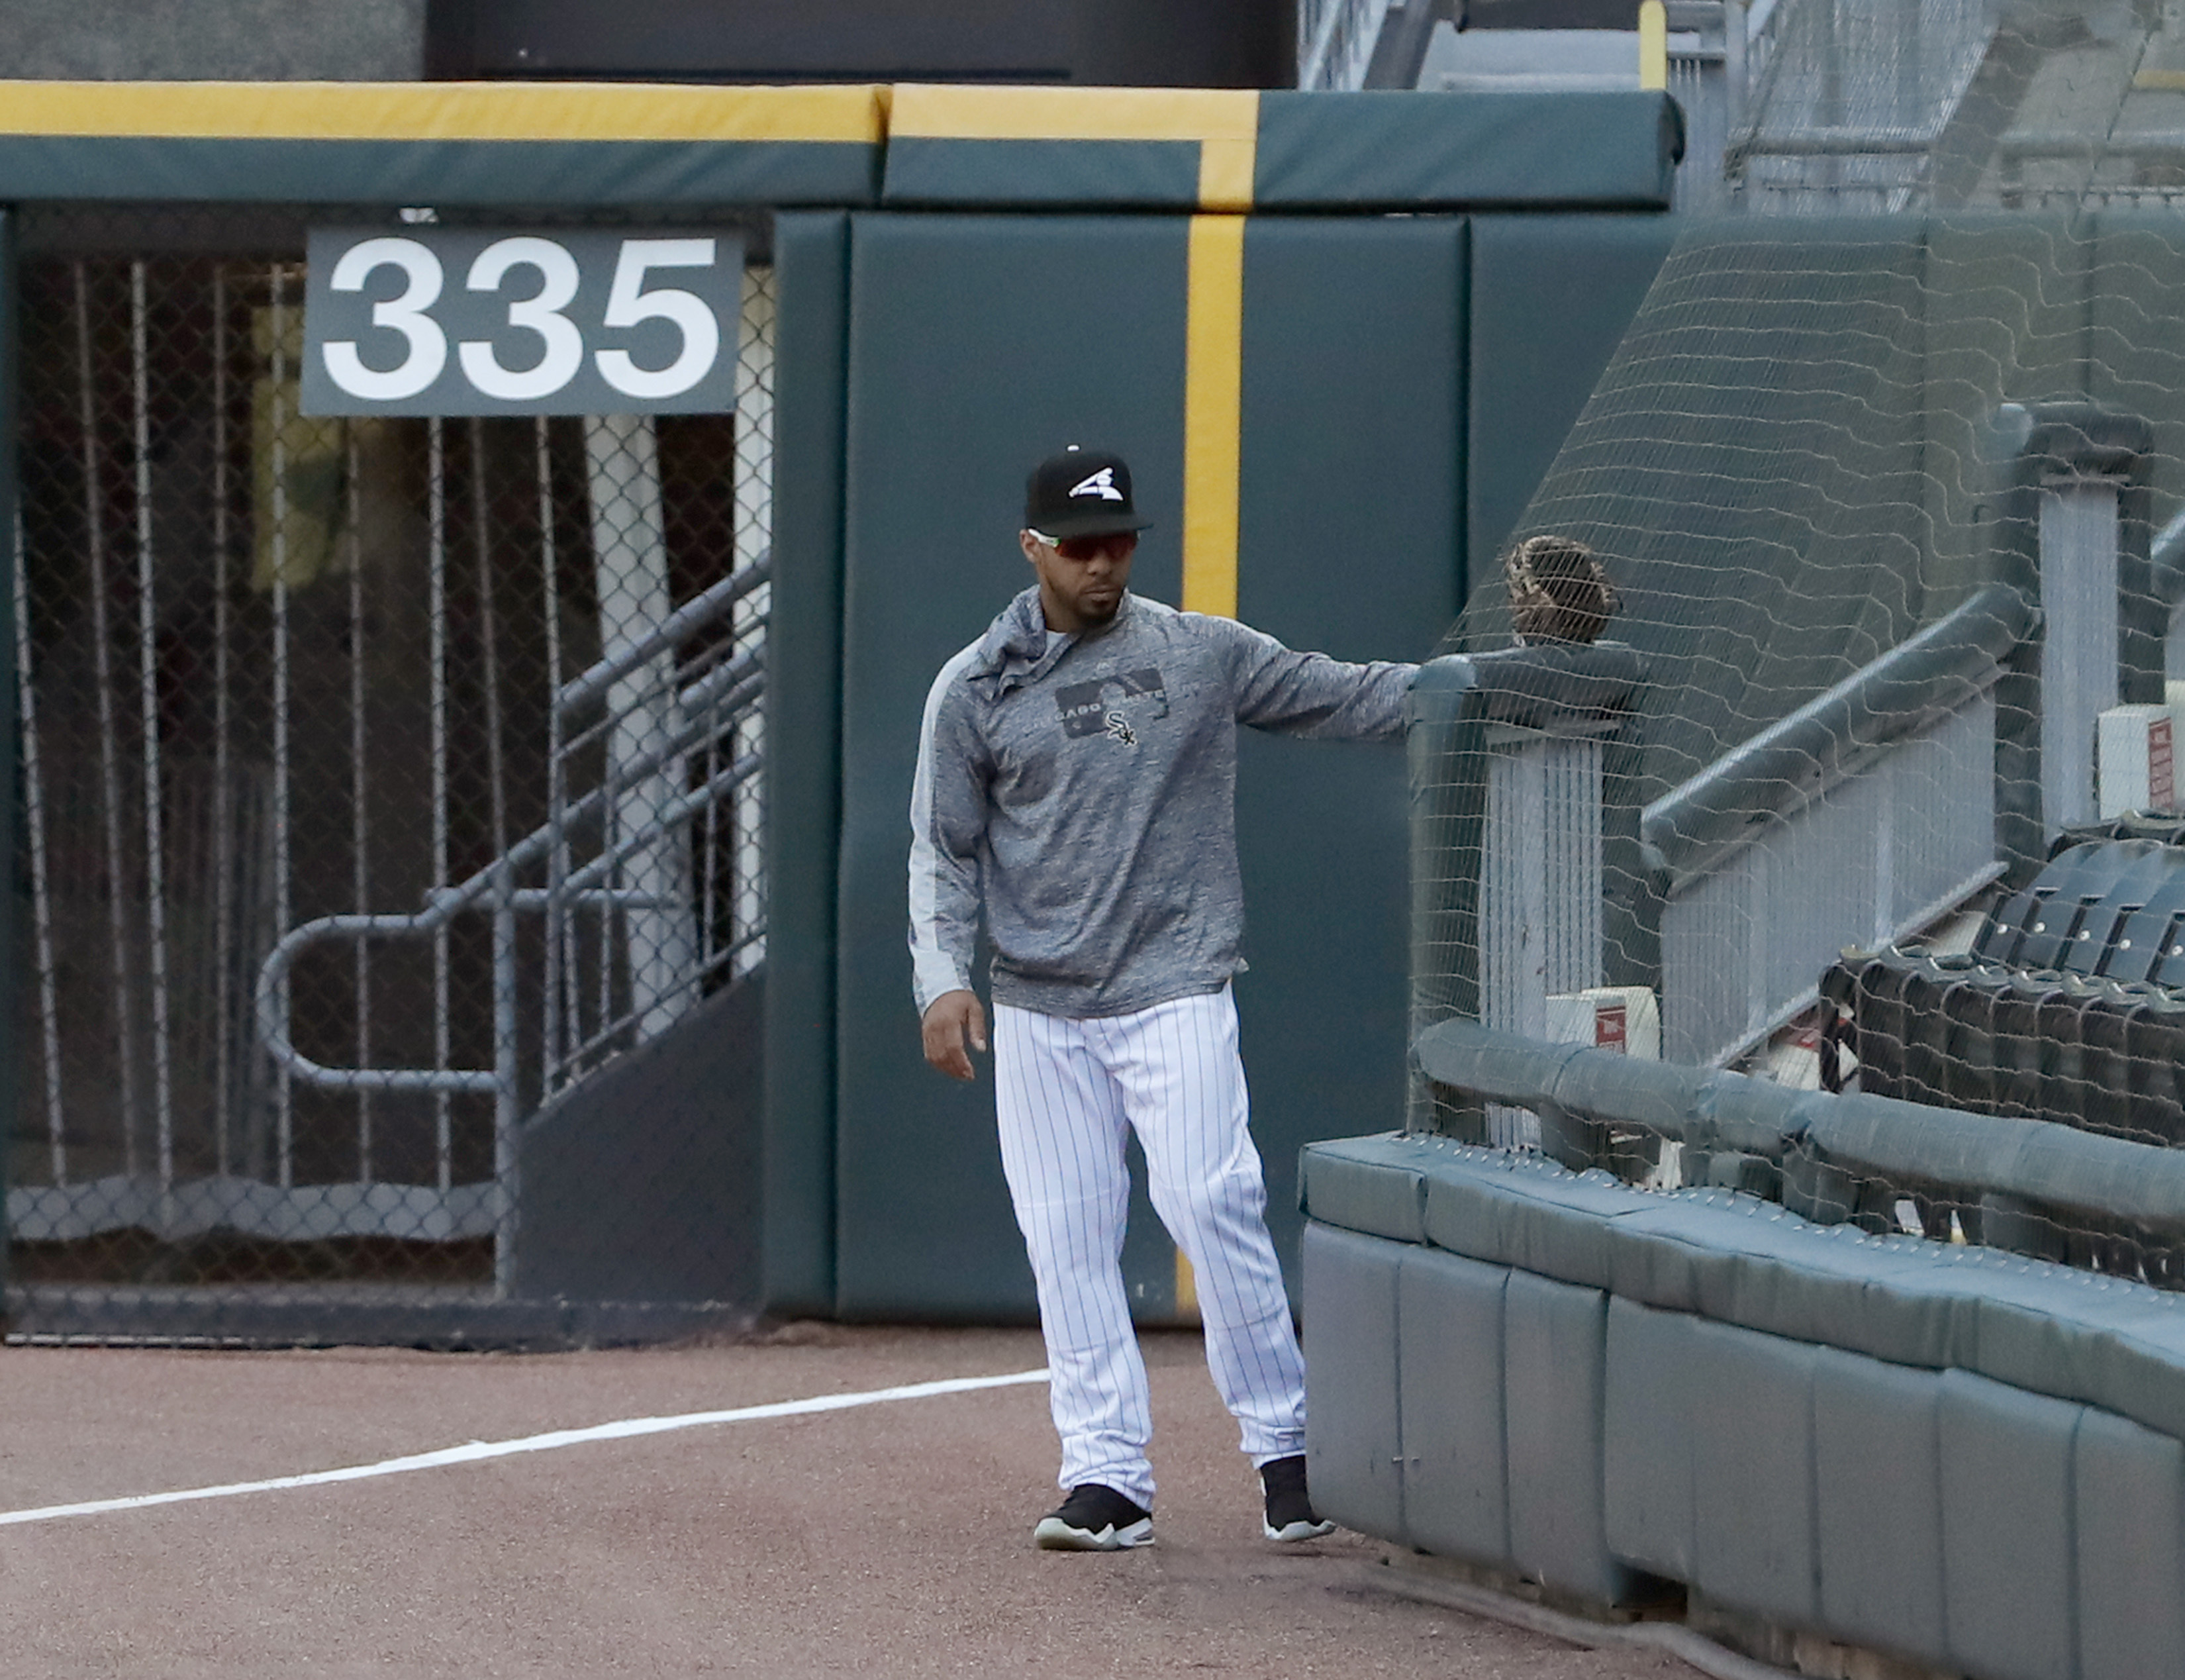 White Sox first team to use foul pole-to-pole netting